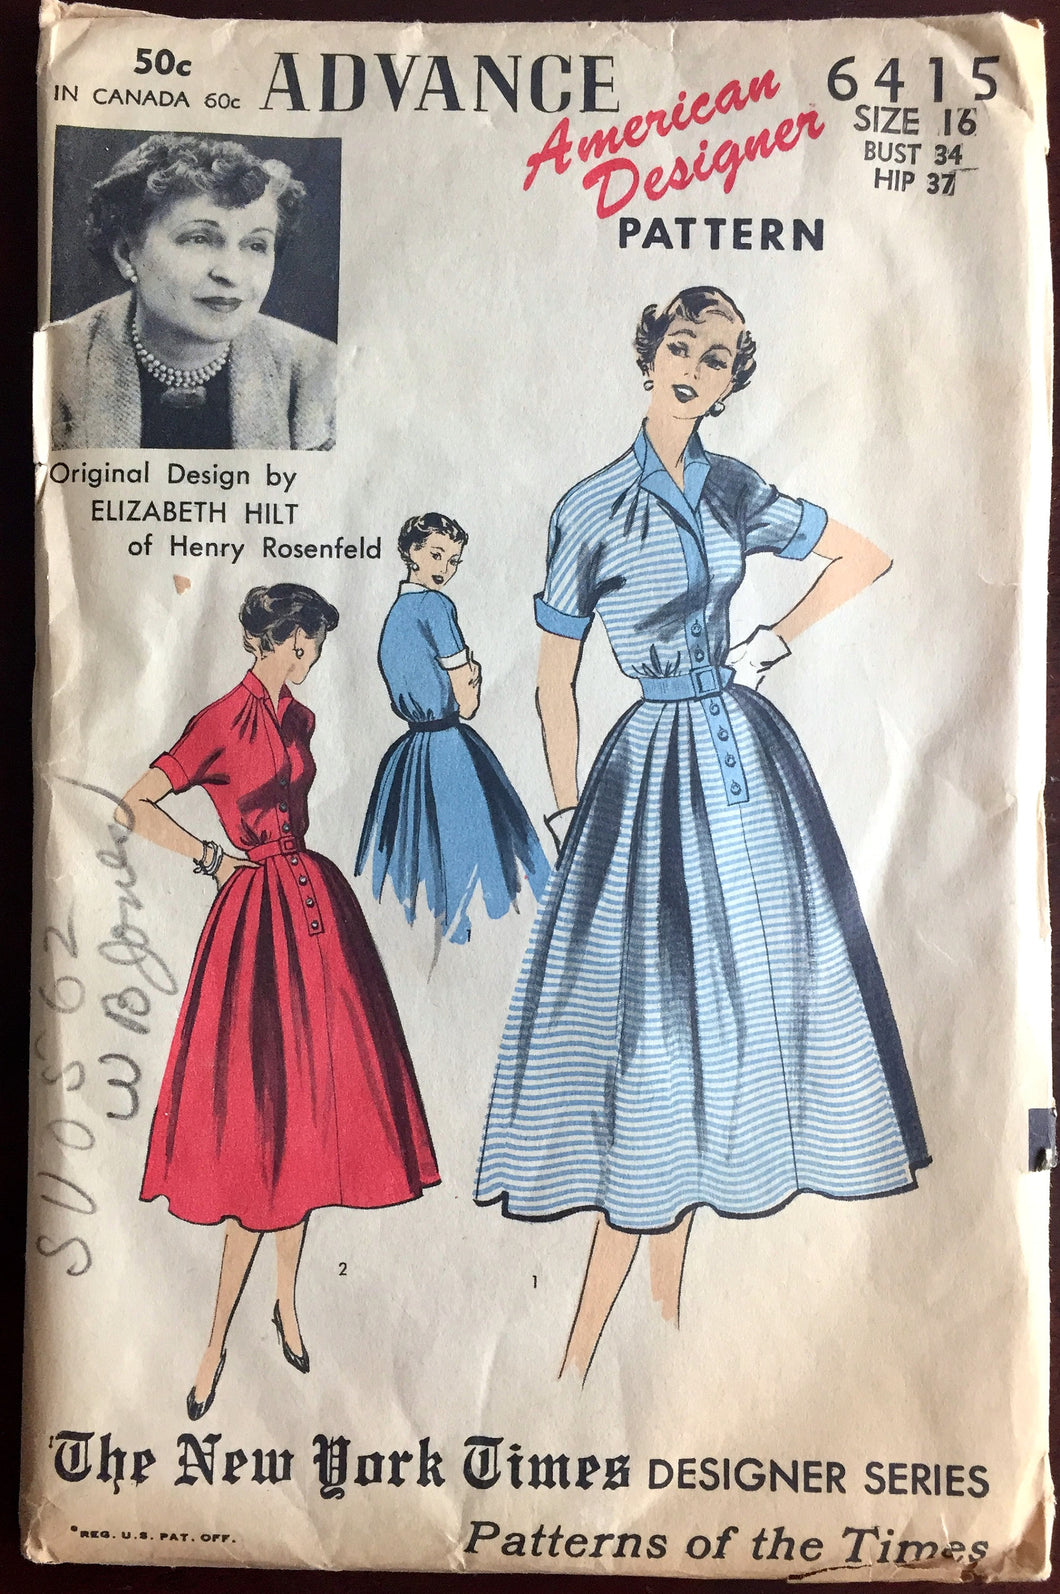 1950's Advance Shirtwaist Dress Pattern - by Elizabeth Hilt - Bust 34